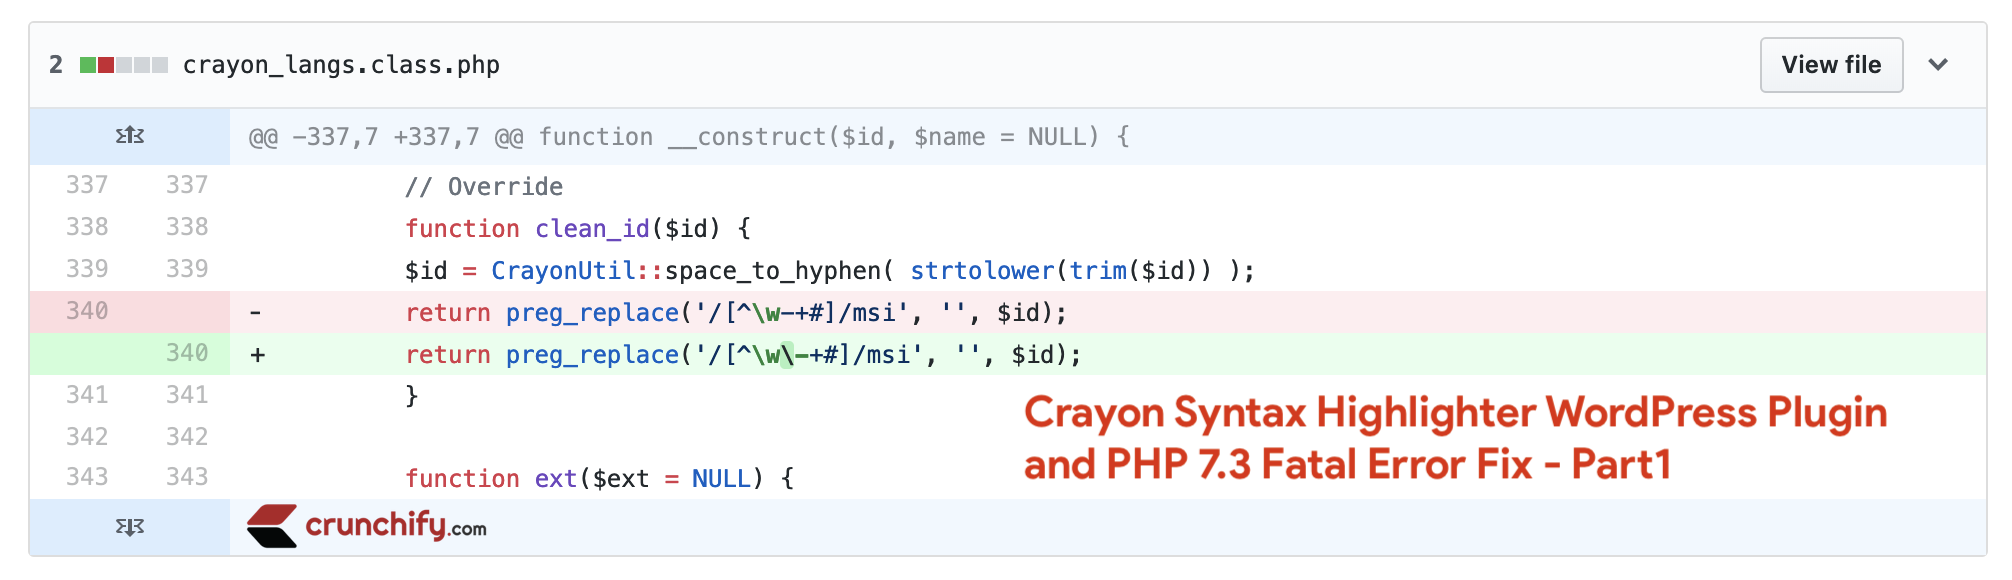 Crayon Syntax Highlighter PHP 7.3 fix - crayon_langs.class.php